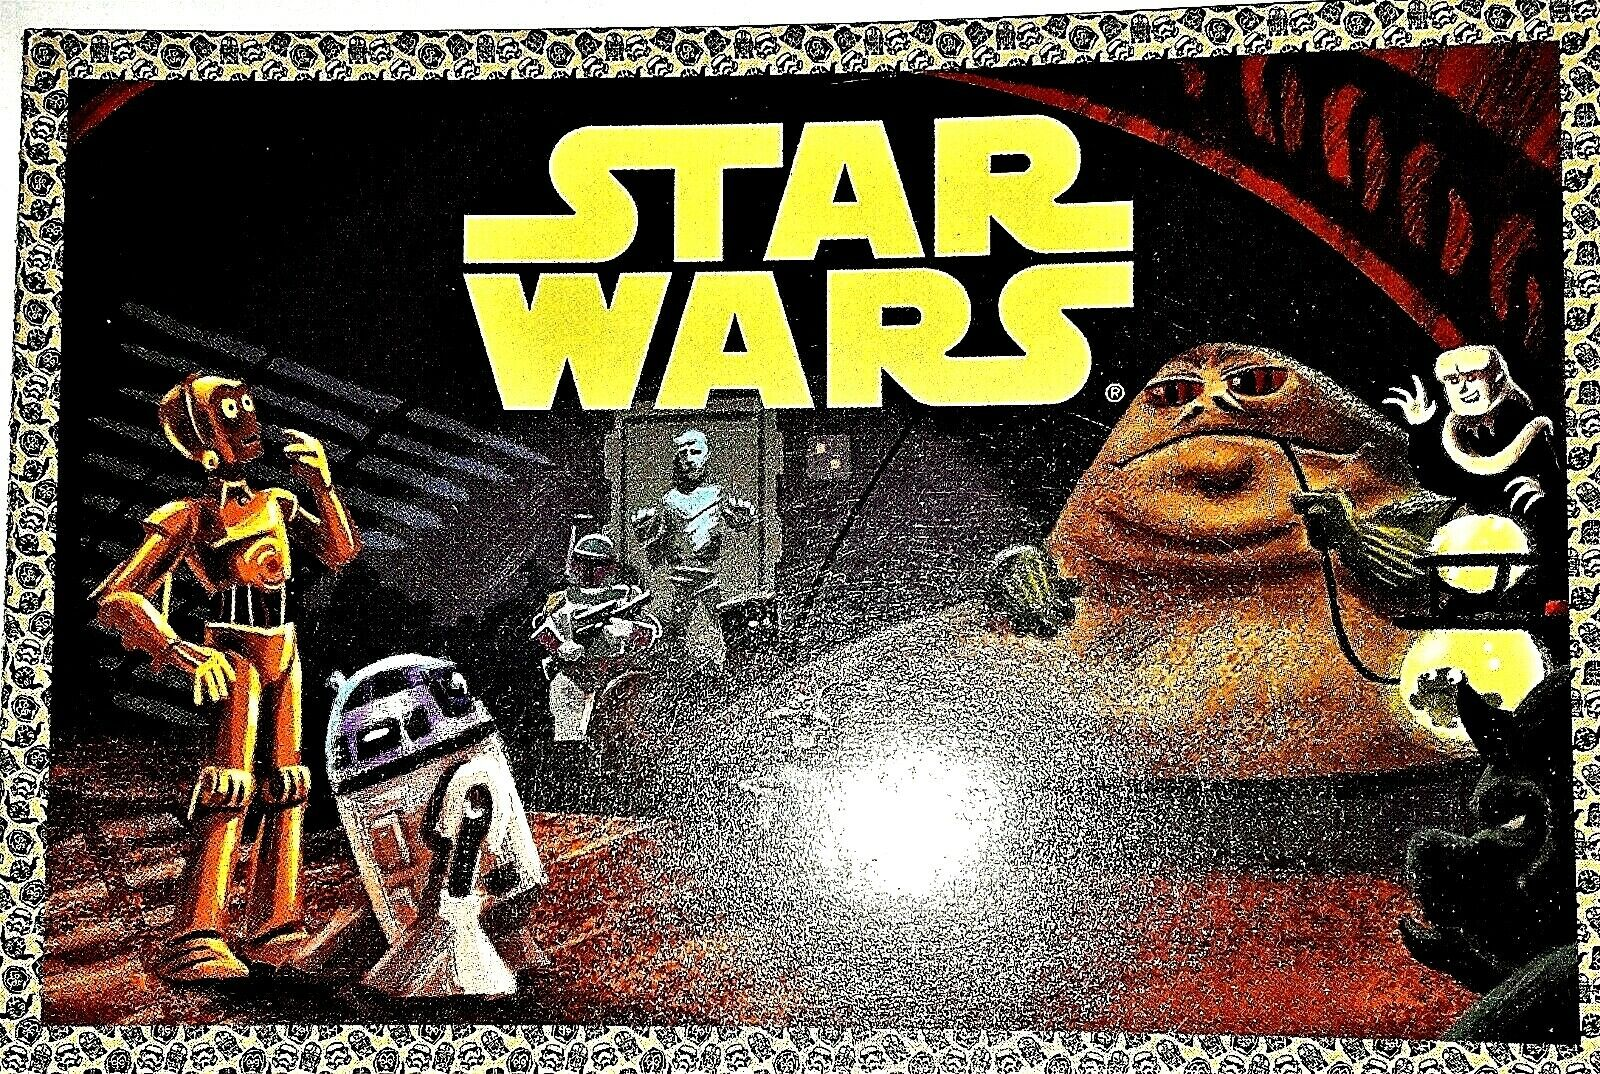 Disney D23 Exclusive Expo Star Wars Card Set Little Golden Books Promo Cards 1-6 - $14.99